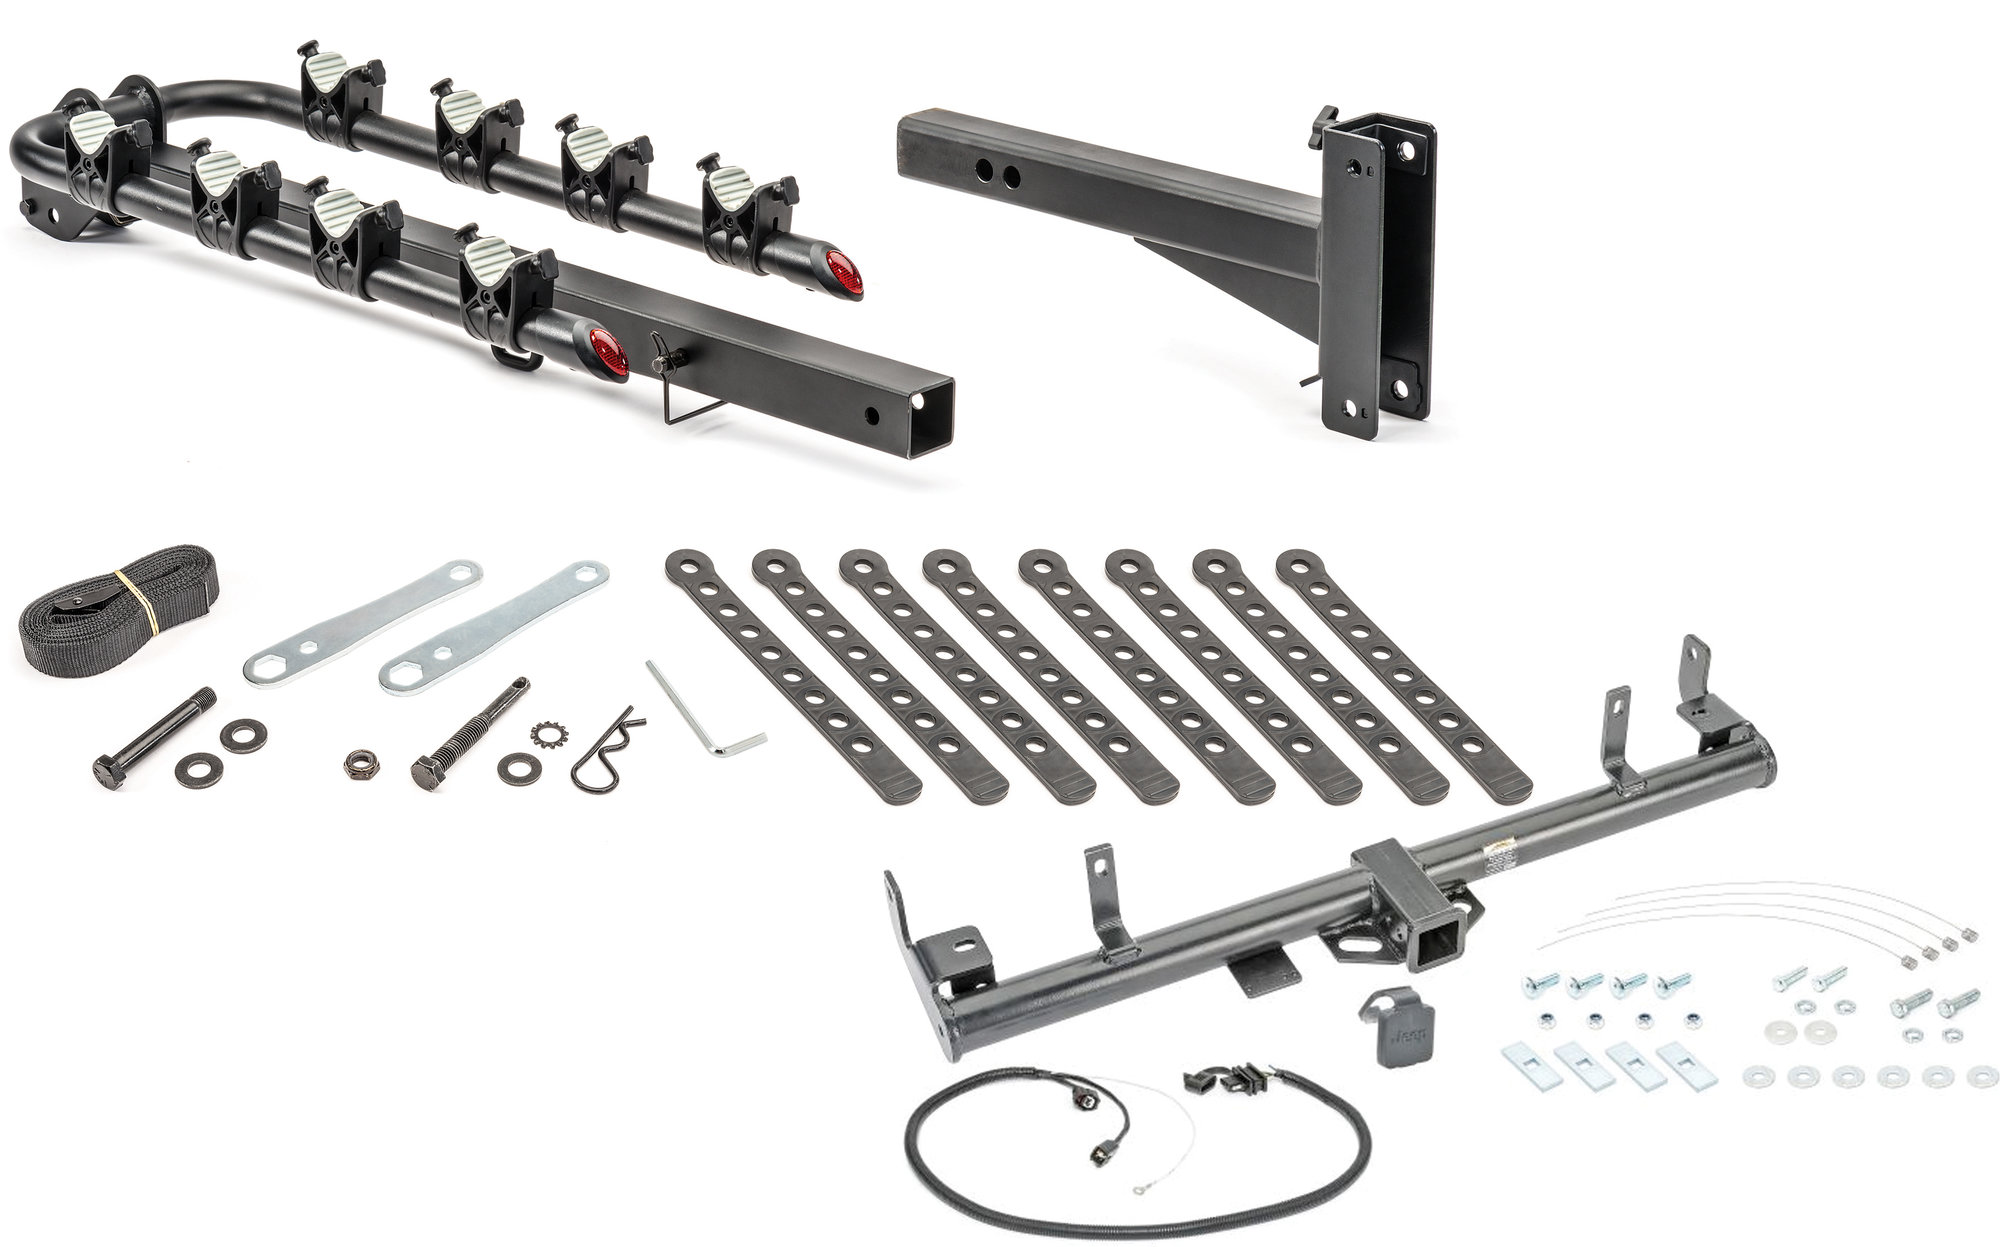 Quadratec 4 Bike Folding Bike Rack Amp 2 Receiver Hitch Kit For 98 06 Jeep Wrangler Tj